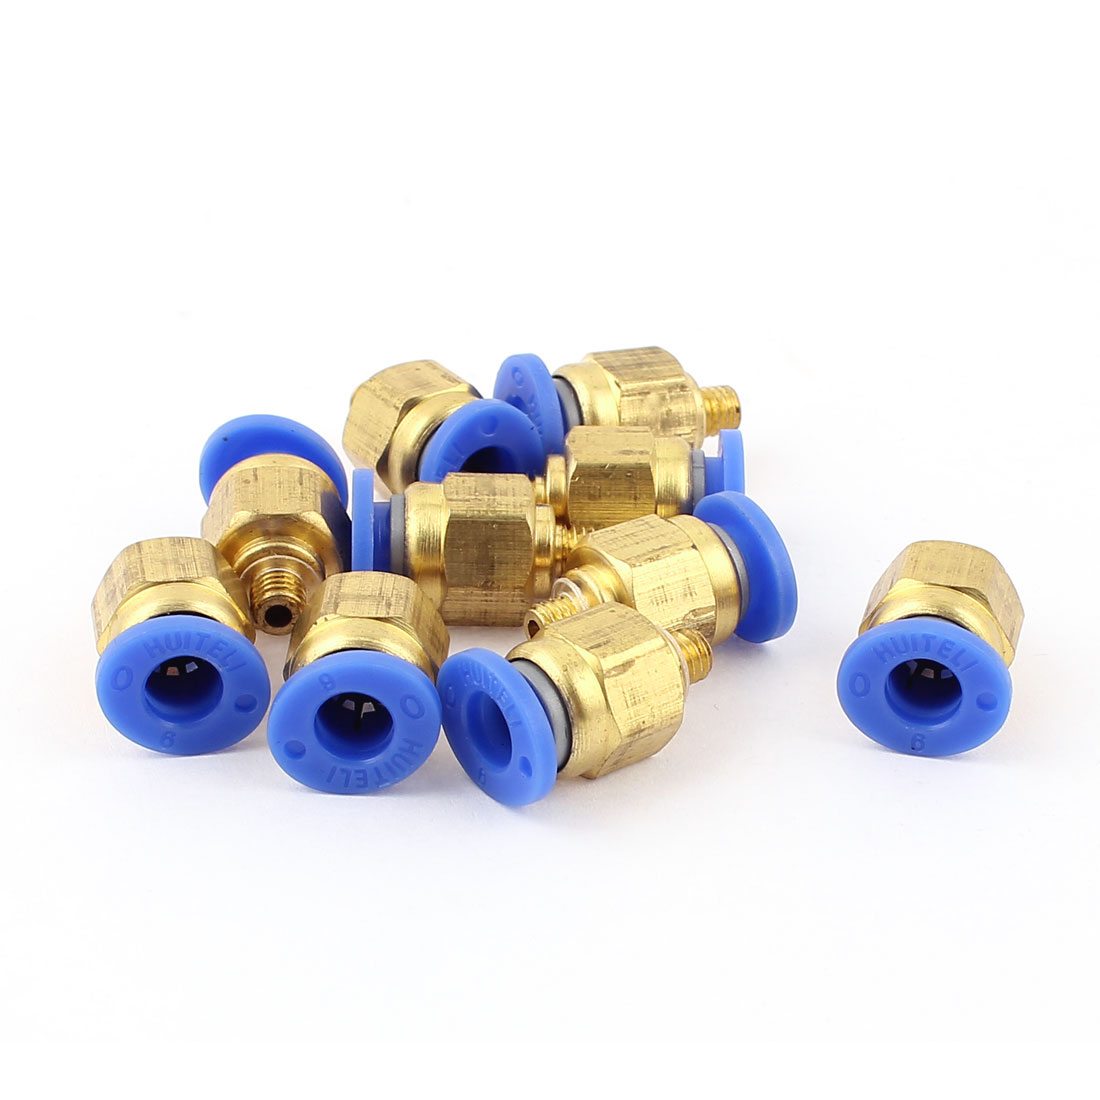 M5 5mm Thread 6mm Tube Dia Air Pneumatic Quick Fitting Coupler Connectors 10pcs